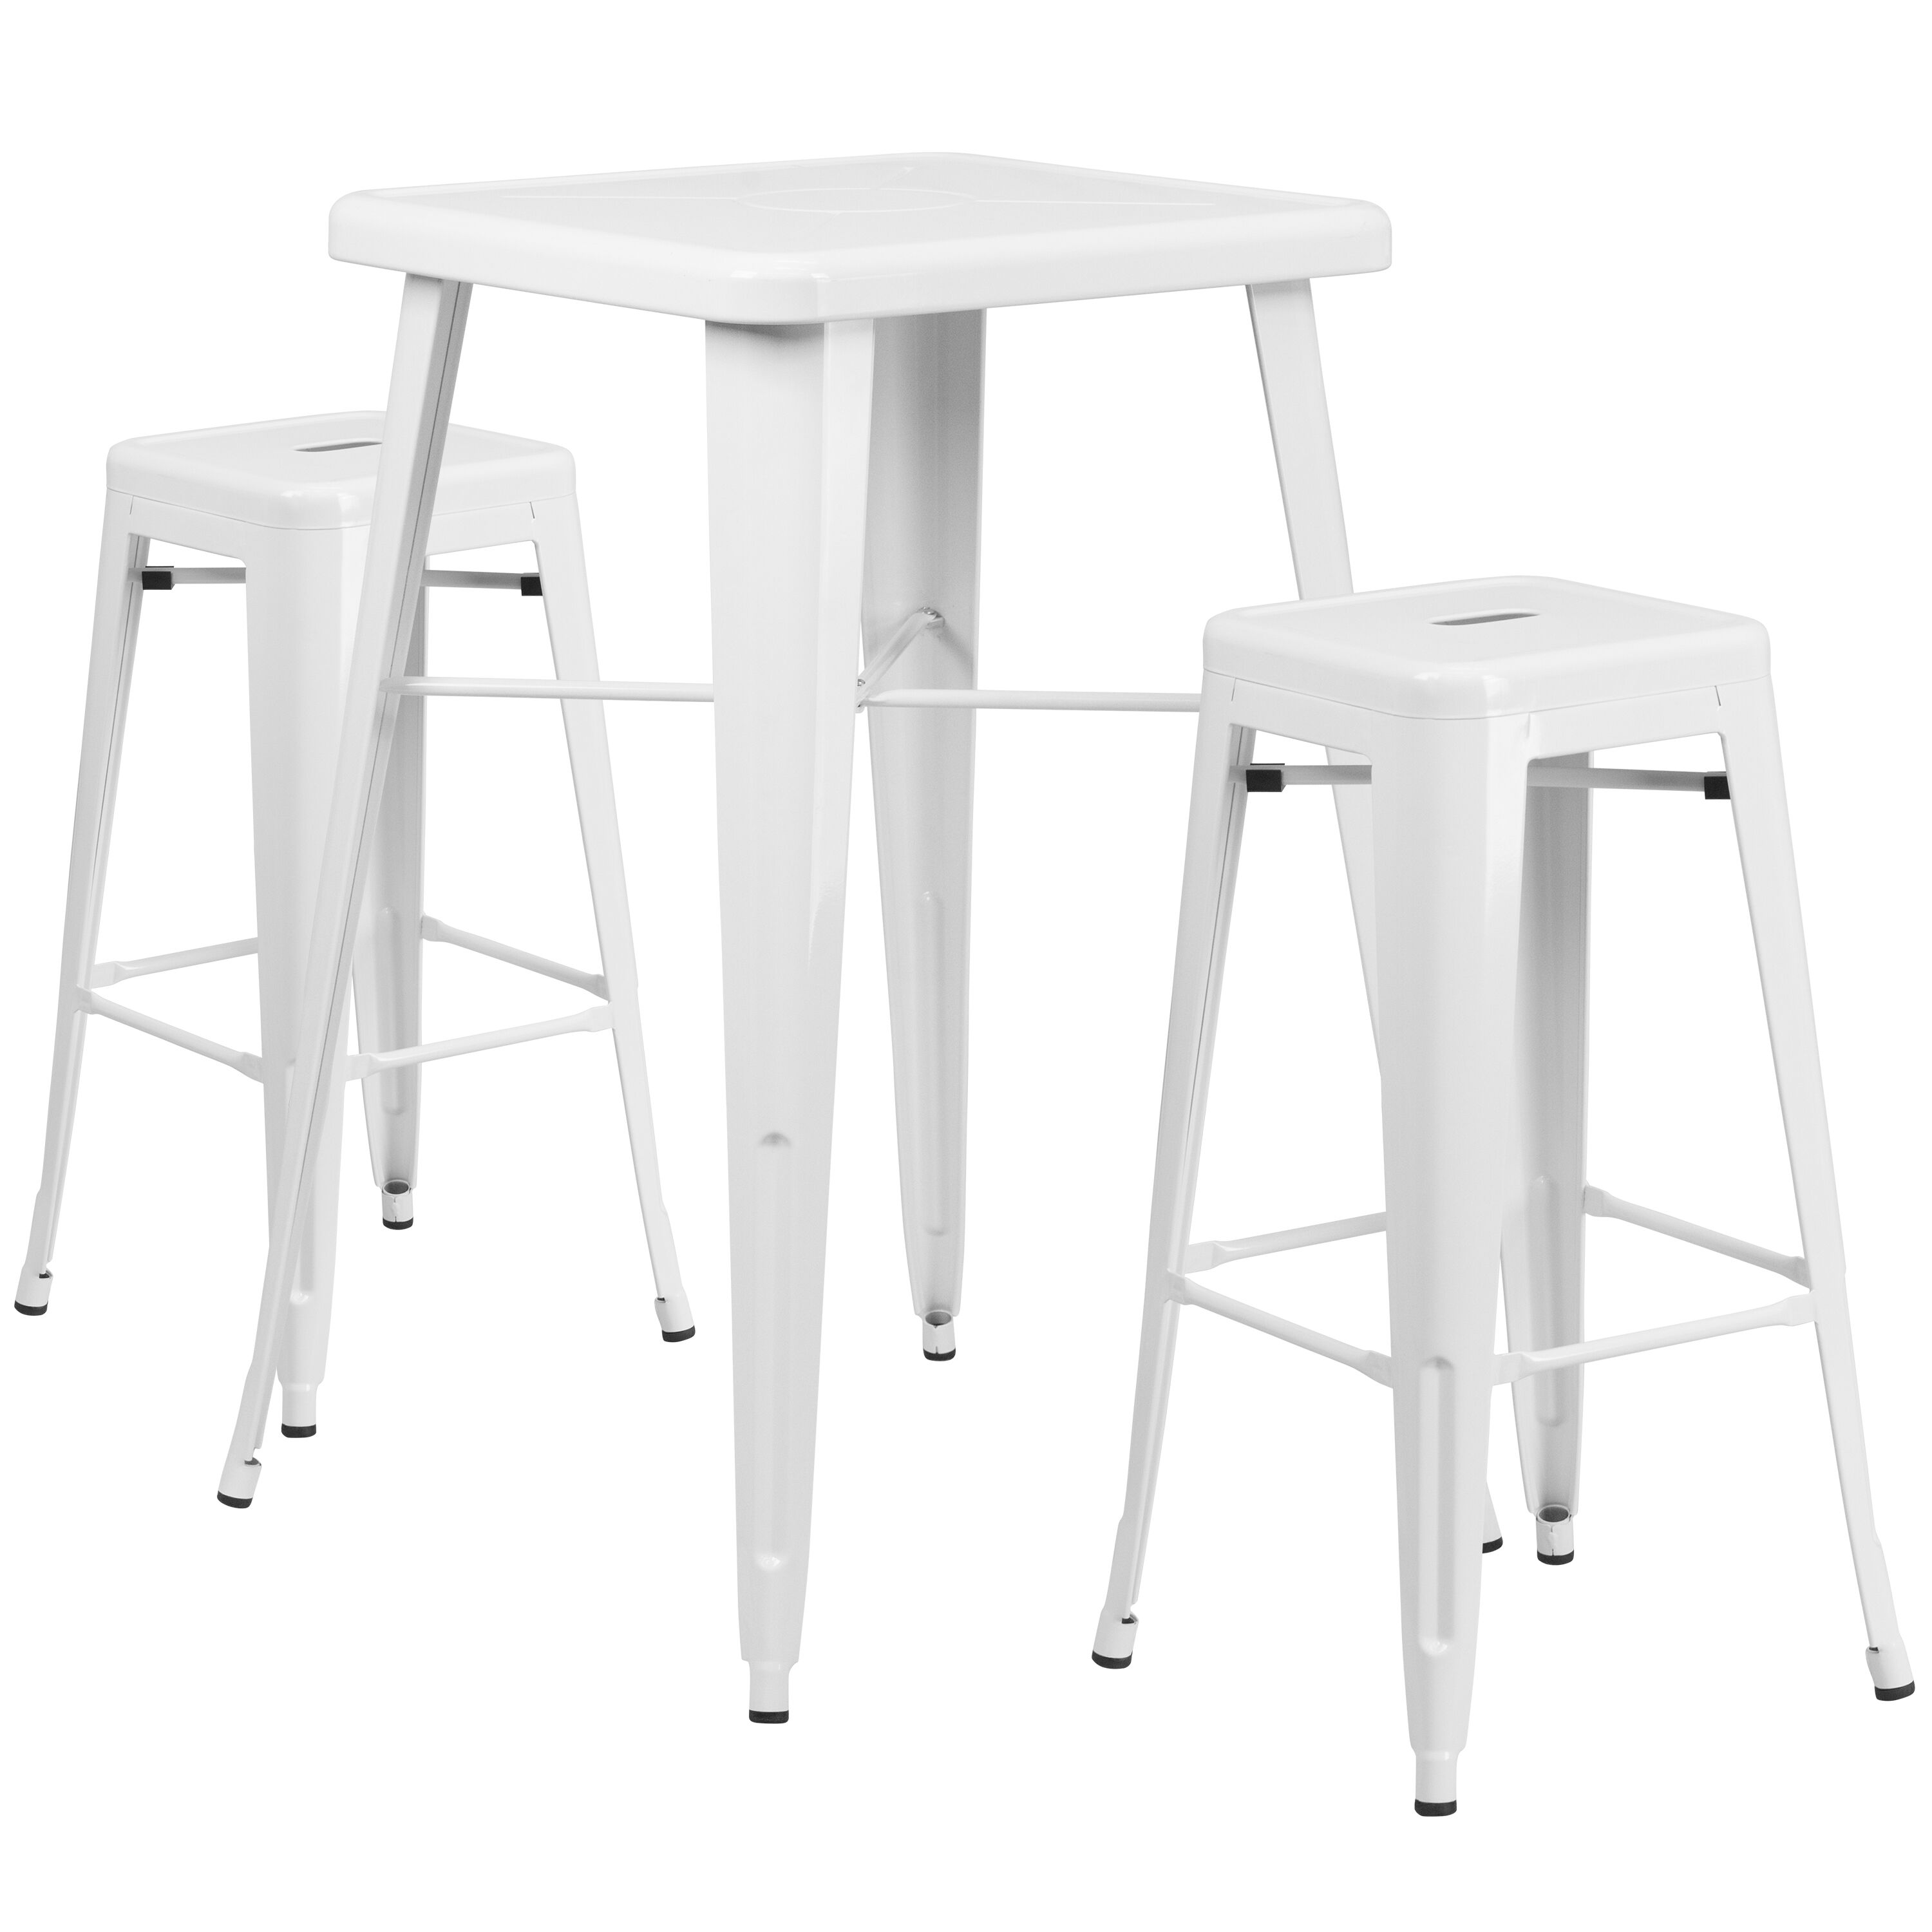 23.75u0027u0027 Square White Metal Indoor Outdoor Bar Table Set With 2 Square Seat  Backless Stools